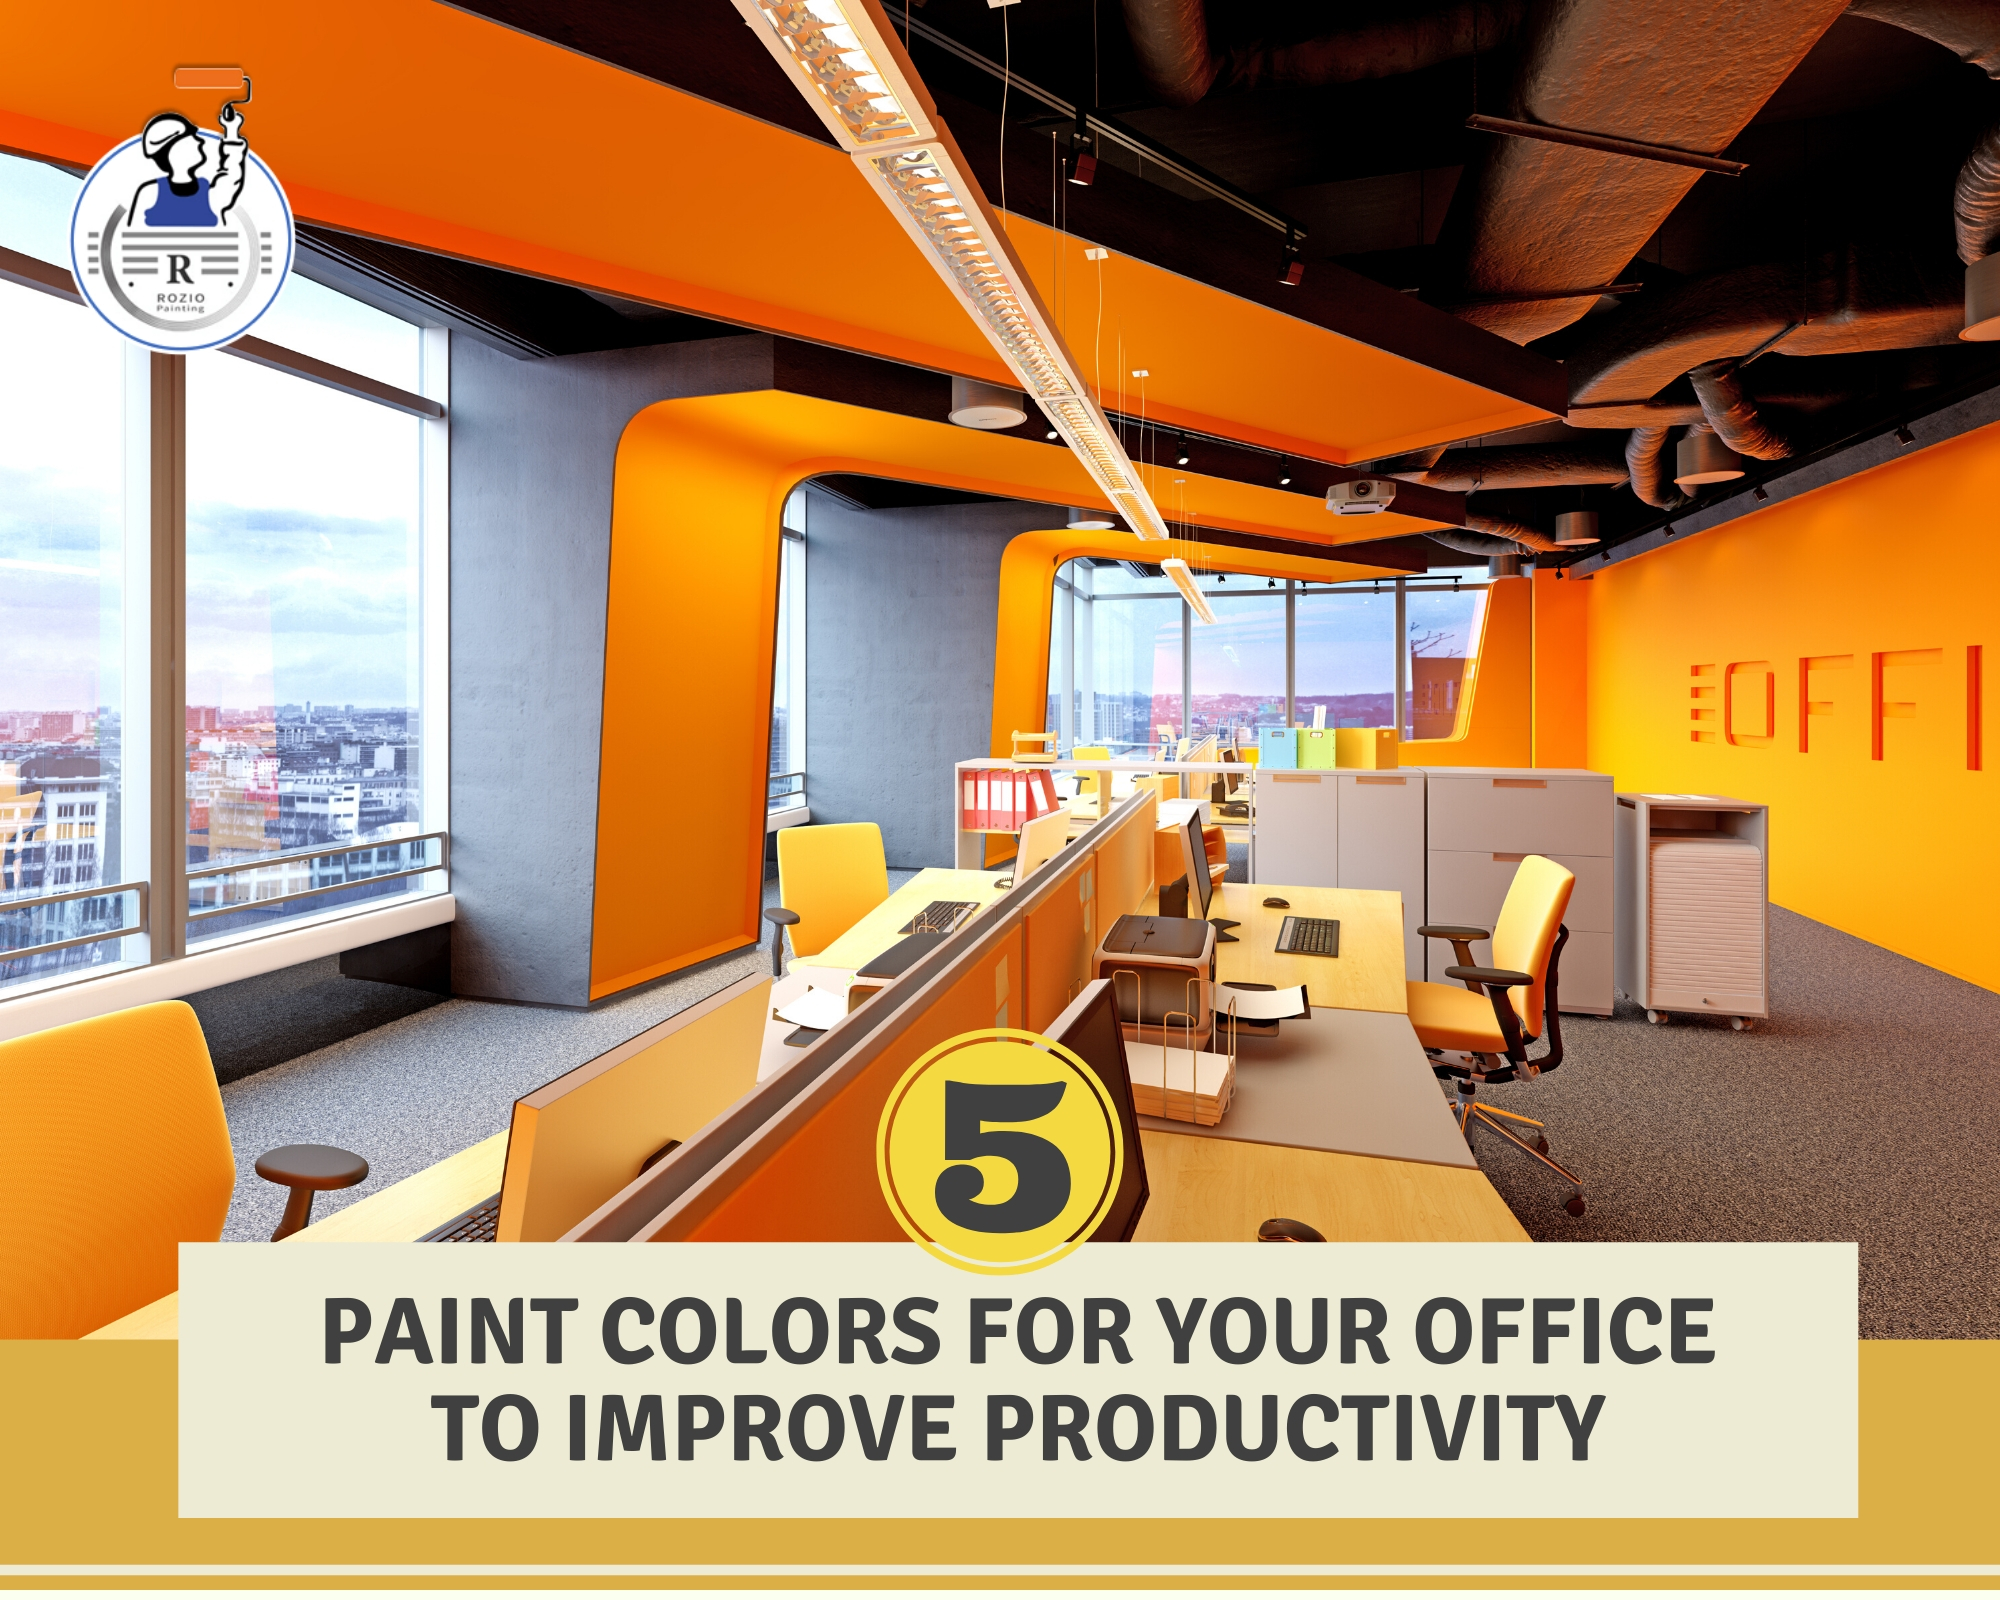 5 Best Office Paint Colors to Improve Productivity